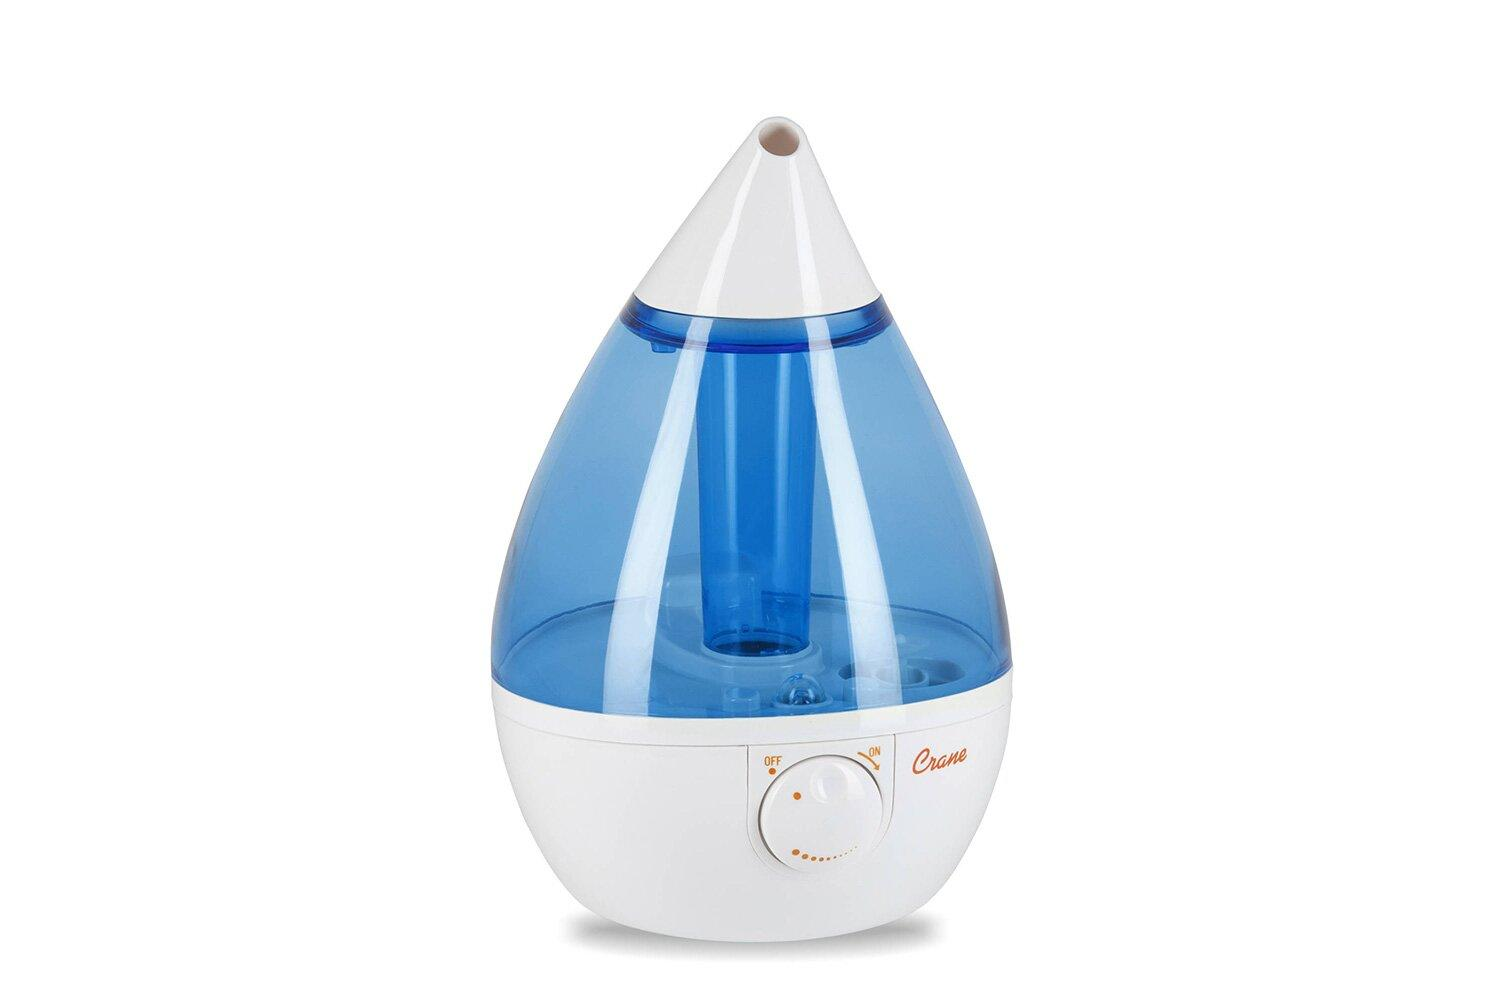 This Cool Mist Humidifier Helps Prevent Dry Skin and Sinus